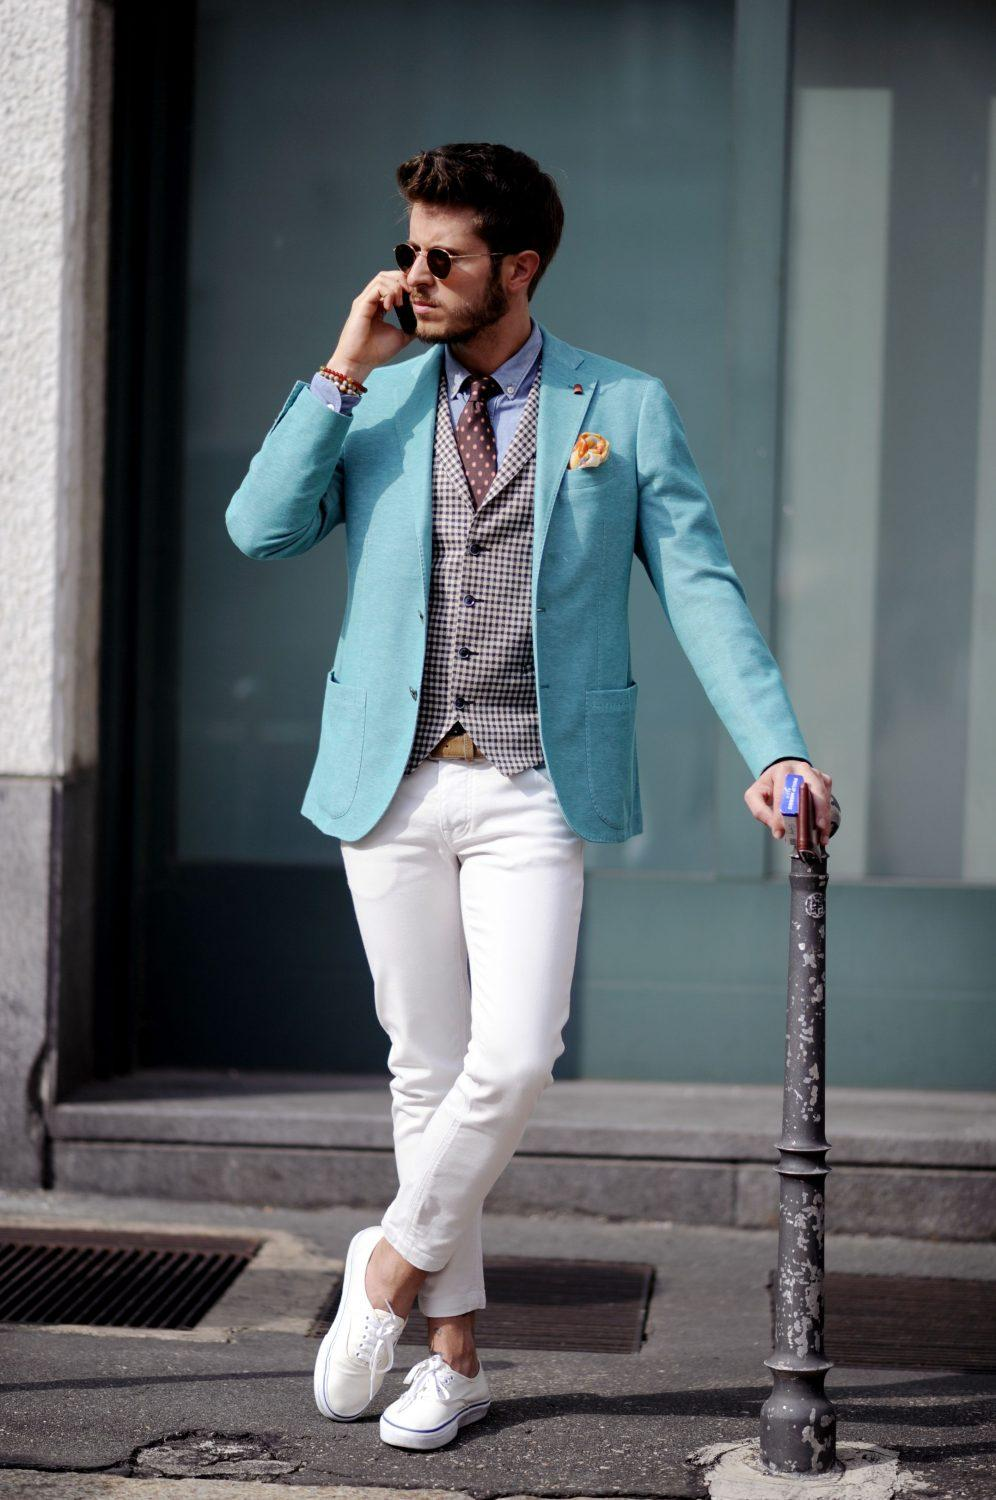 Let's look at the latest trends in exquisite men's fashion